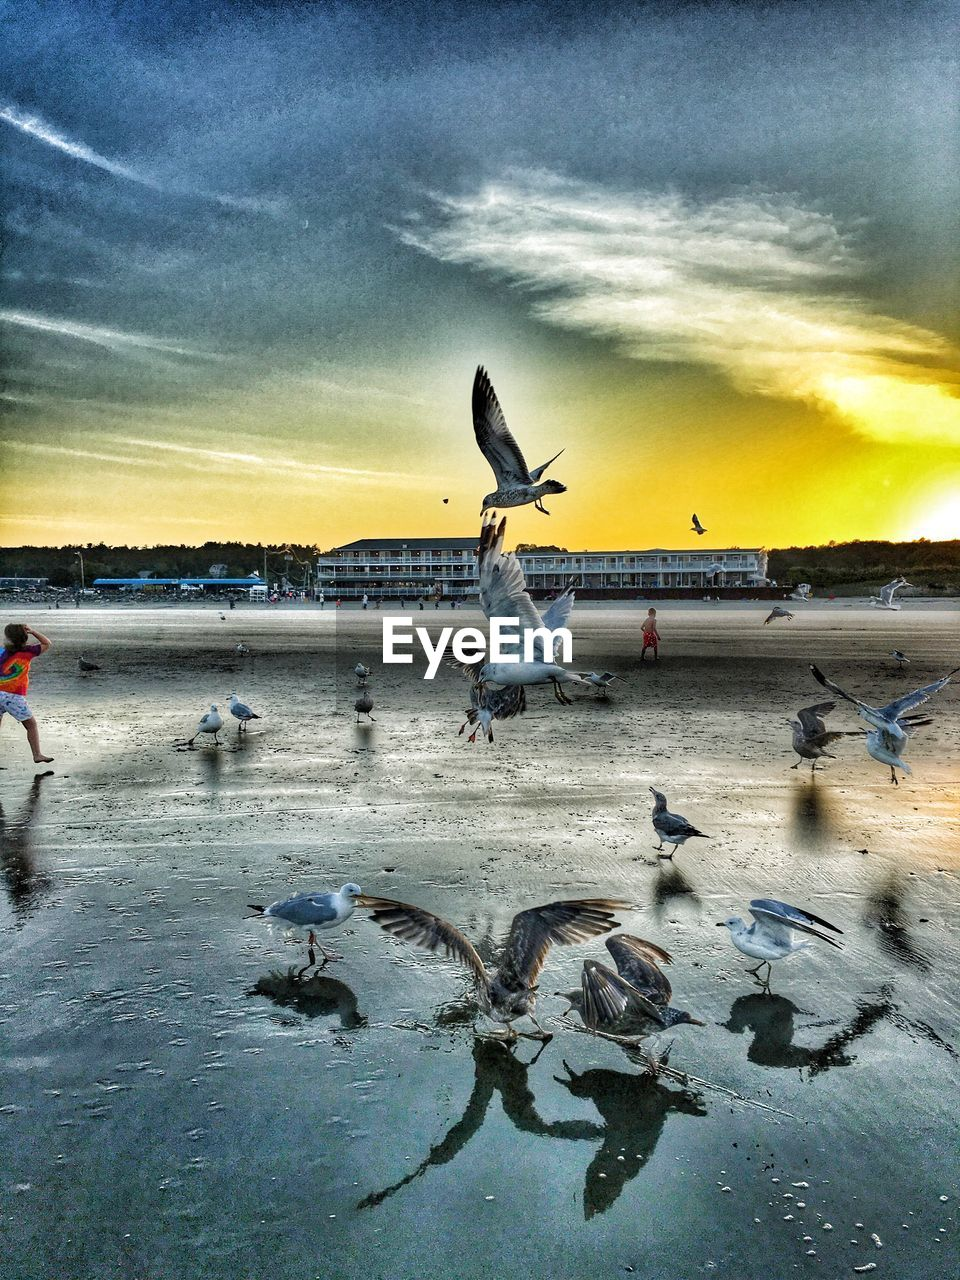 water, sky, bird, cloud - sky, animal themes, group of animals, animals in the wild, animal, animal wildlife, vertebrate, sea, flying, sunset, beauty in nature, nature, large group of animals, scenics - nature, reflection, seagull, outdoors, flock of birds